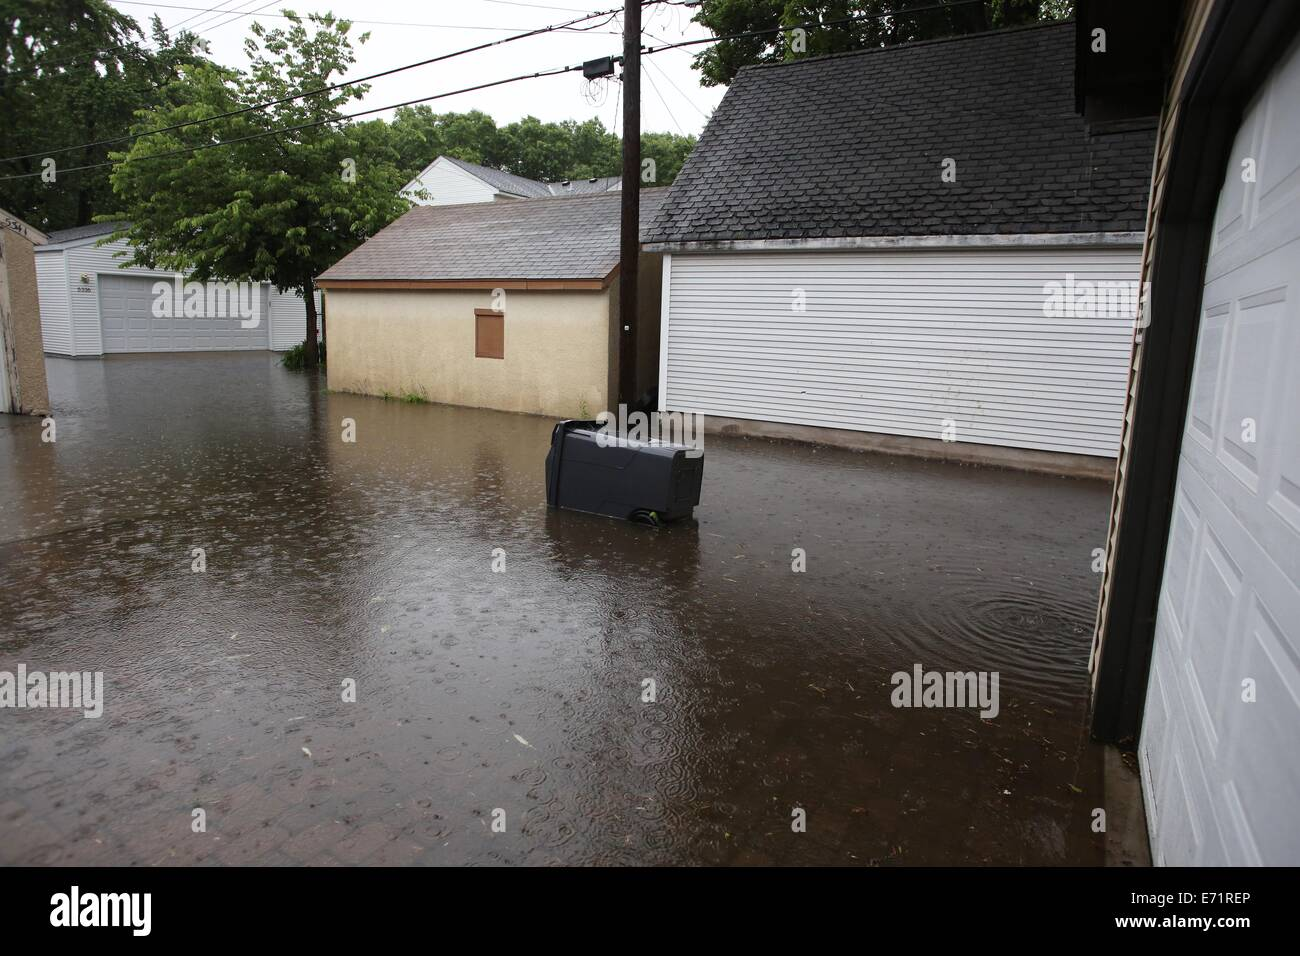 An overturned garbage bin in a flooded alley in Minneapolis, Minnesota. - Stock Image